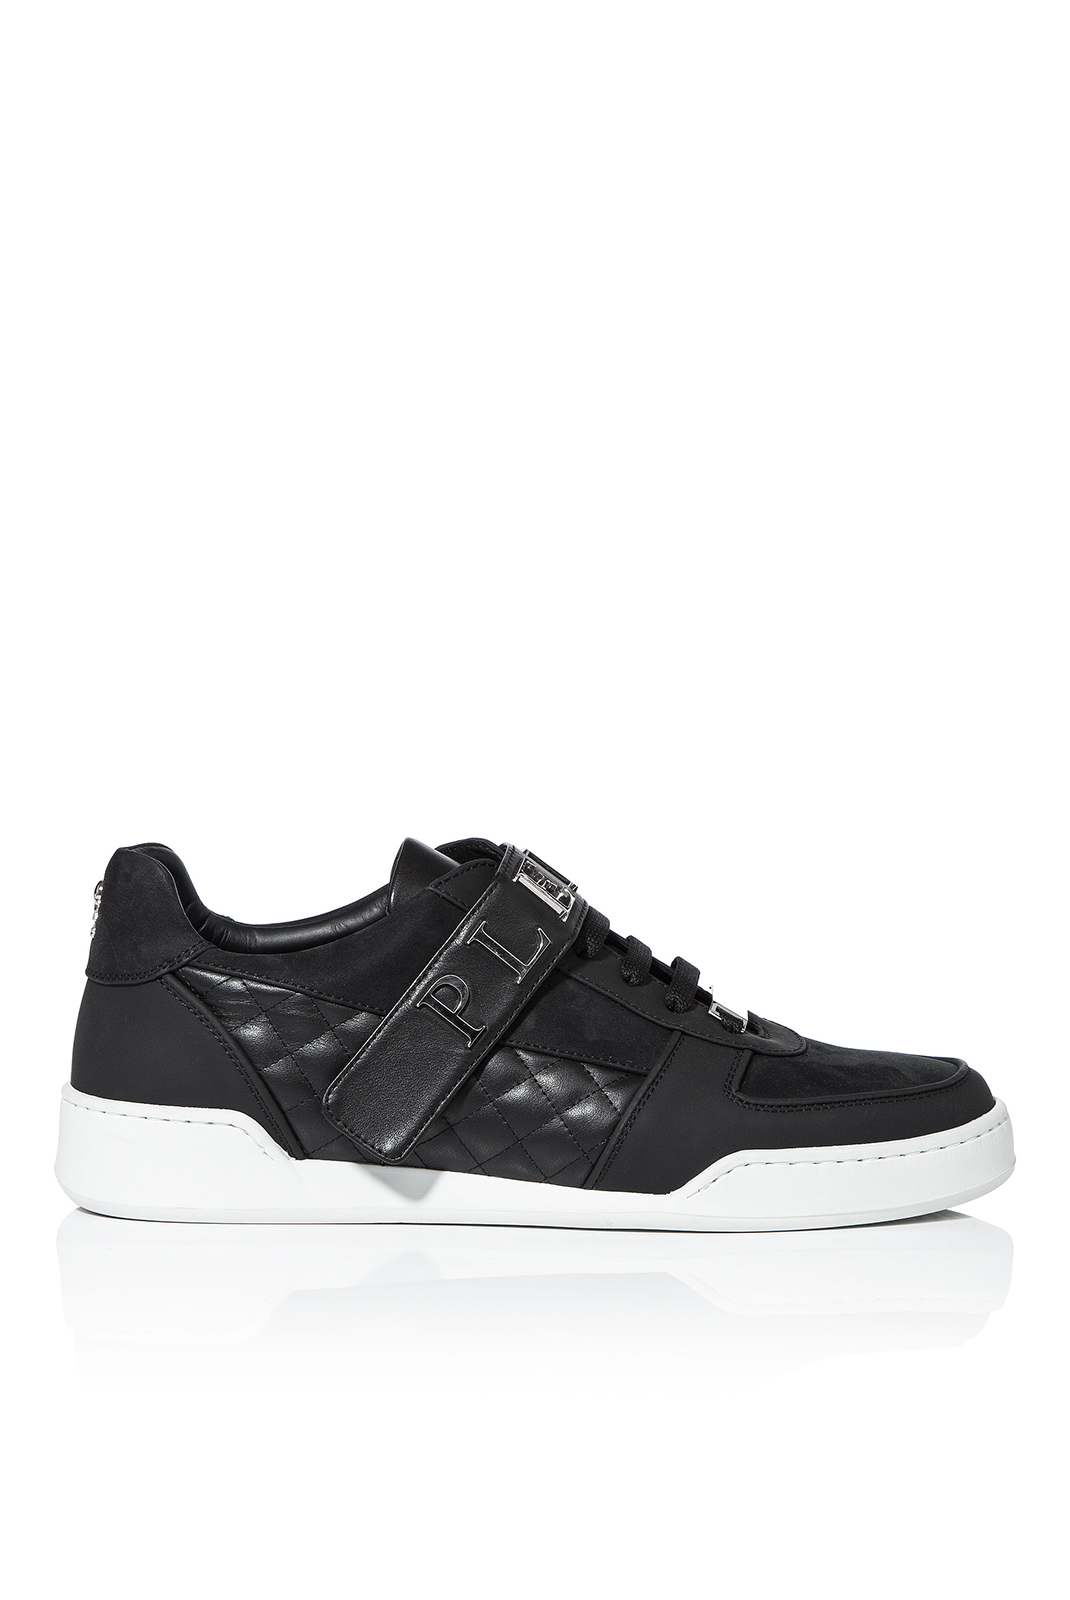 Baskets / Sport  Philipp plein MSC0478 WATSON BLACK/NICKEL